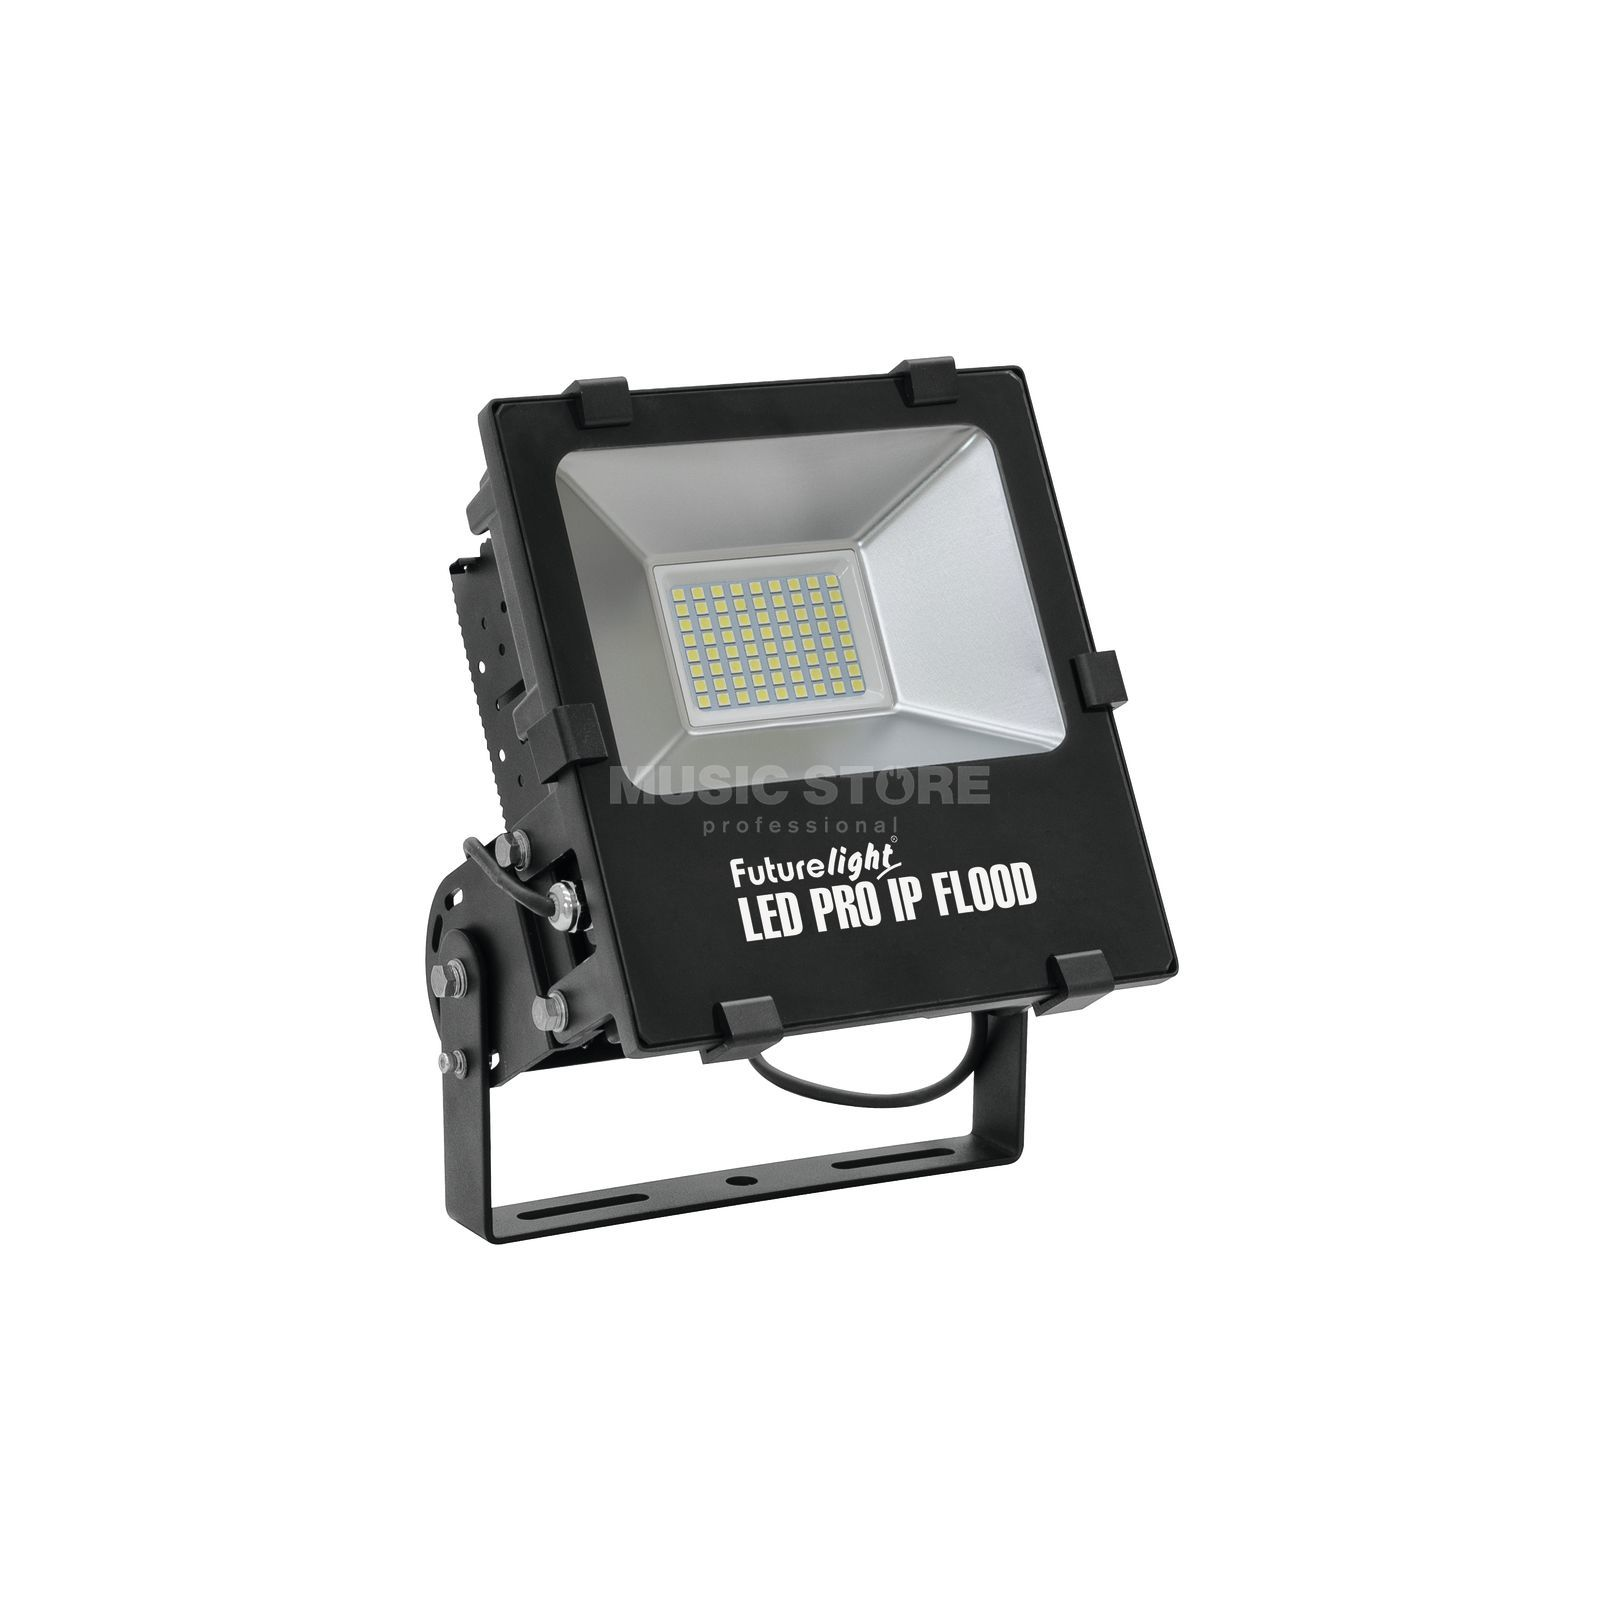 Futurelight LED PRO IP Flood 96 Produktbild